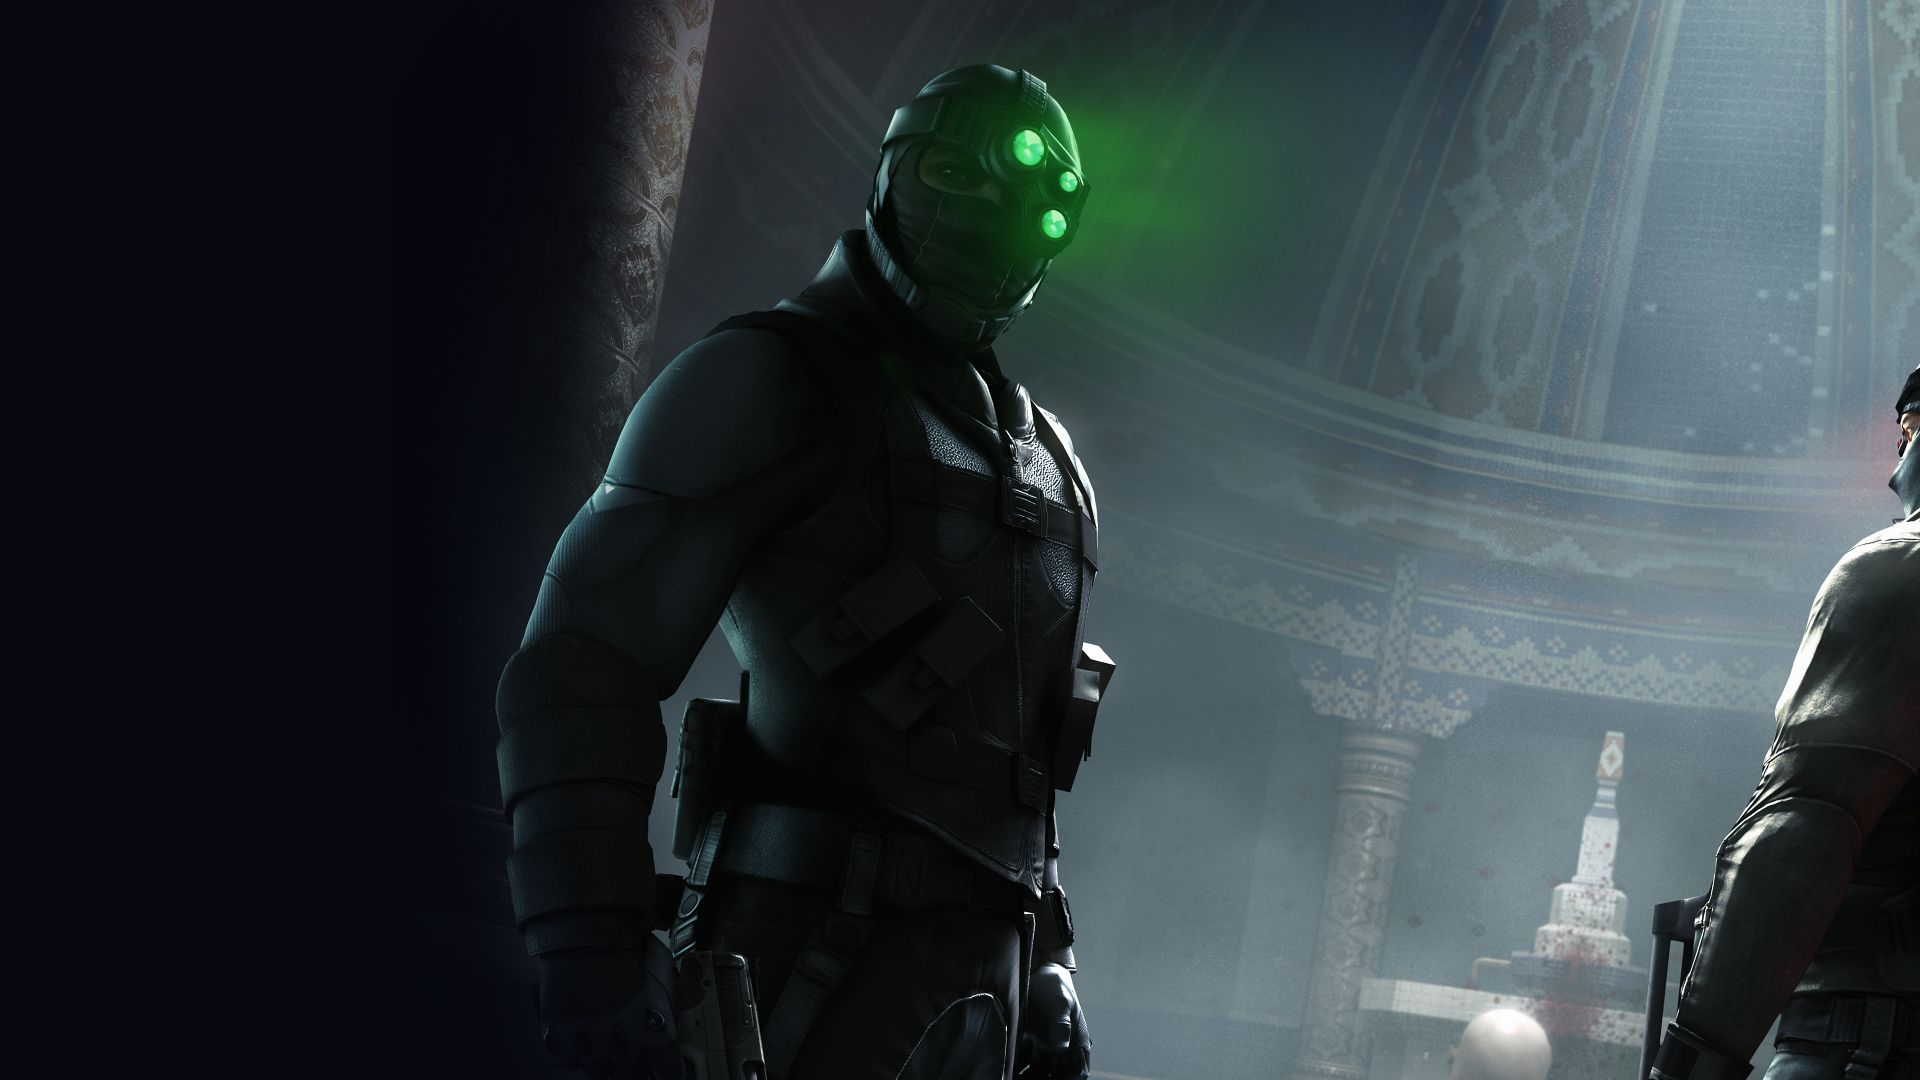 Splinter Cell 2019